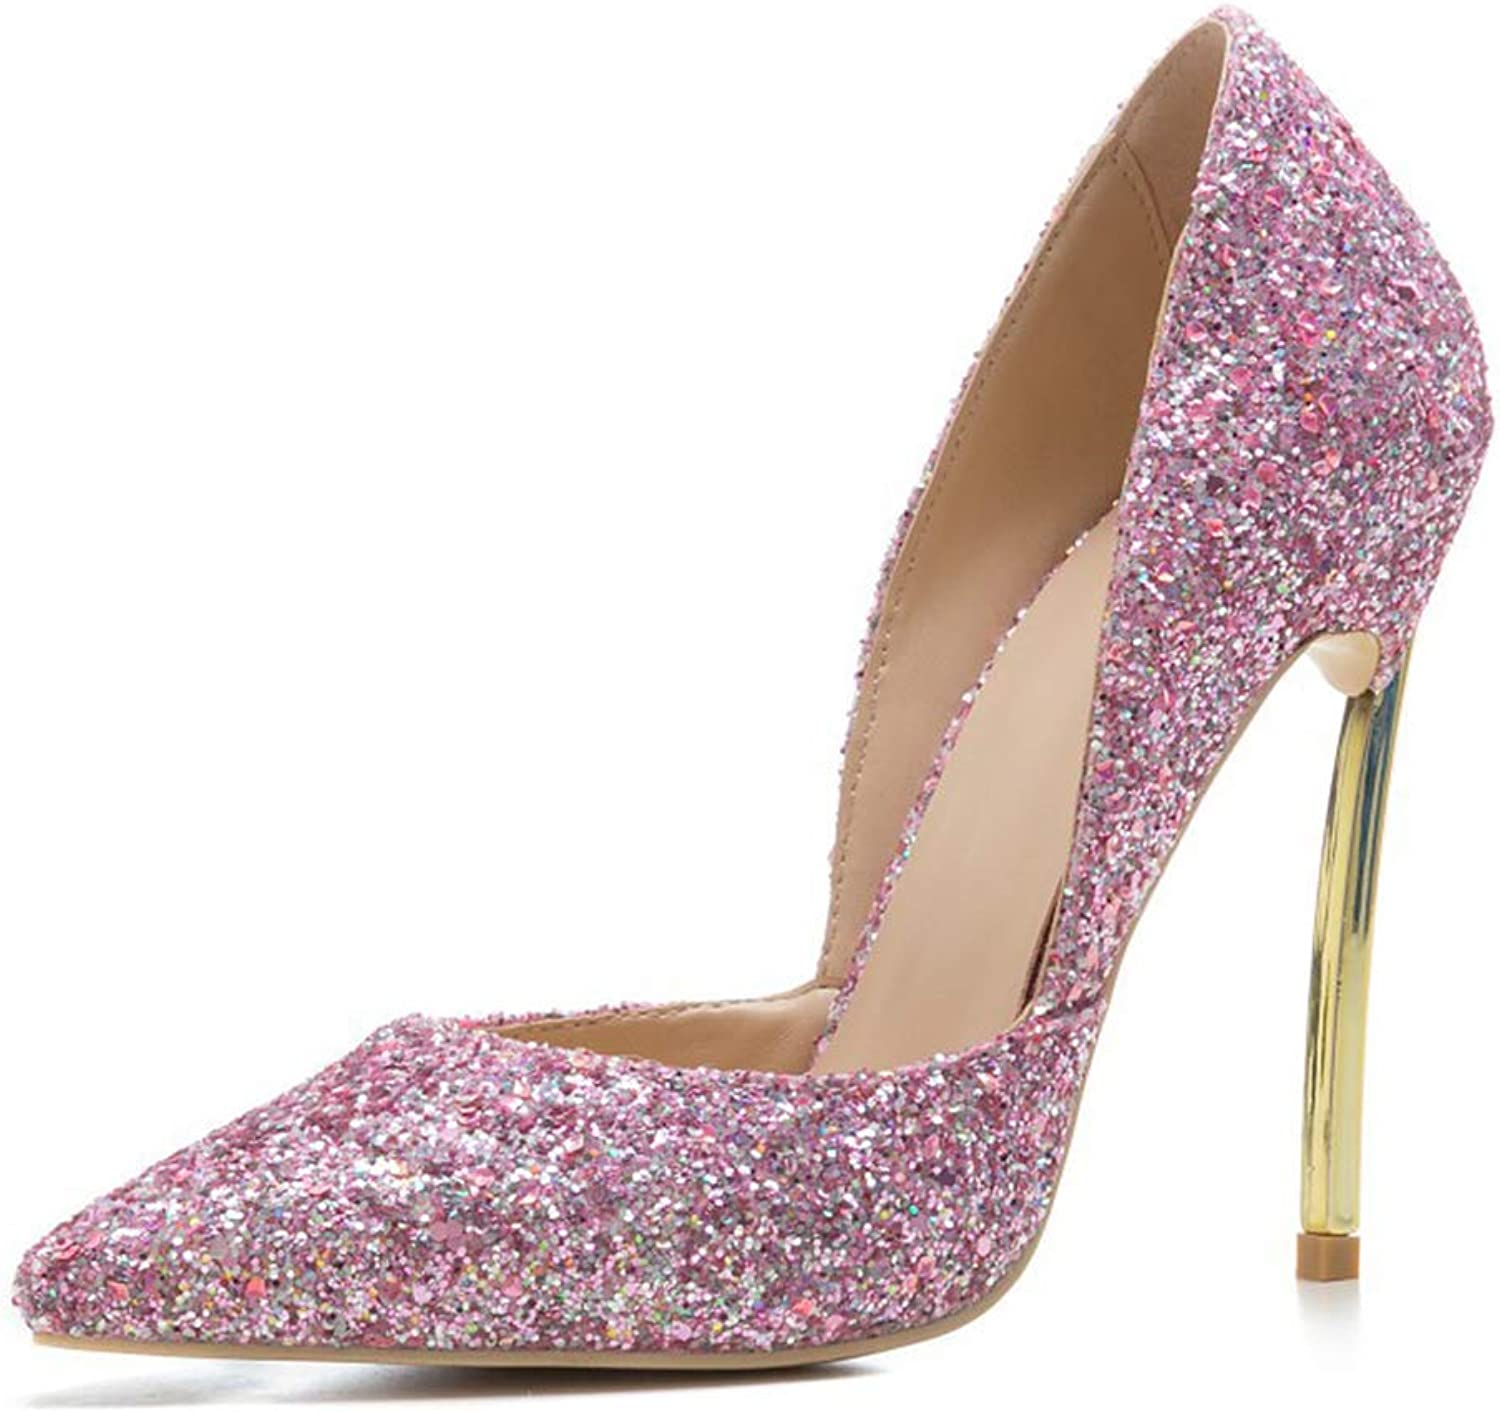 Pointed High Heel shoes Fashion Dress Pumps Bridal Wedding Party Glitter Pump